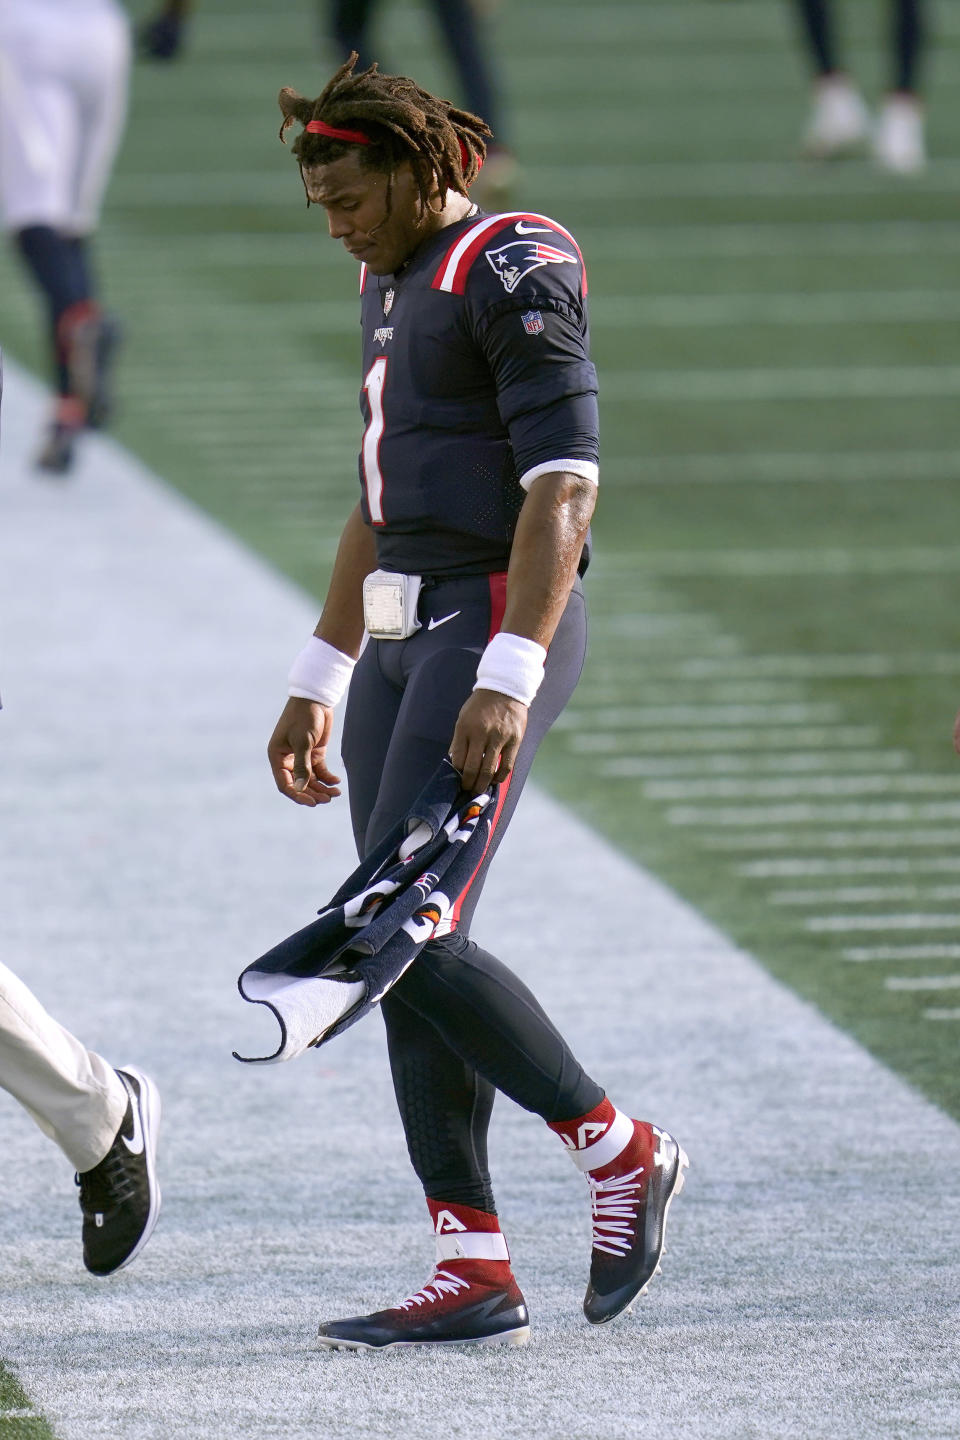 FILE - New England Patriots quarterback Cam Newton leaves the field after an NFL football game against the Denver Broncos in Foxborough, Mass., in this Sunday, Oct. 18, 2020, file photo. The Patriots released quarterback Cam Newton on Tuesday, Aug. 31, 2021, clearing the way for rookie Mac Jones to open the season as New England's quarterback, according to a person with knowledge of the move. The person spoke to the Associated Press on condition of anonymity because the decision has not been announced. (AP Photo/Charles Krupa, File)